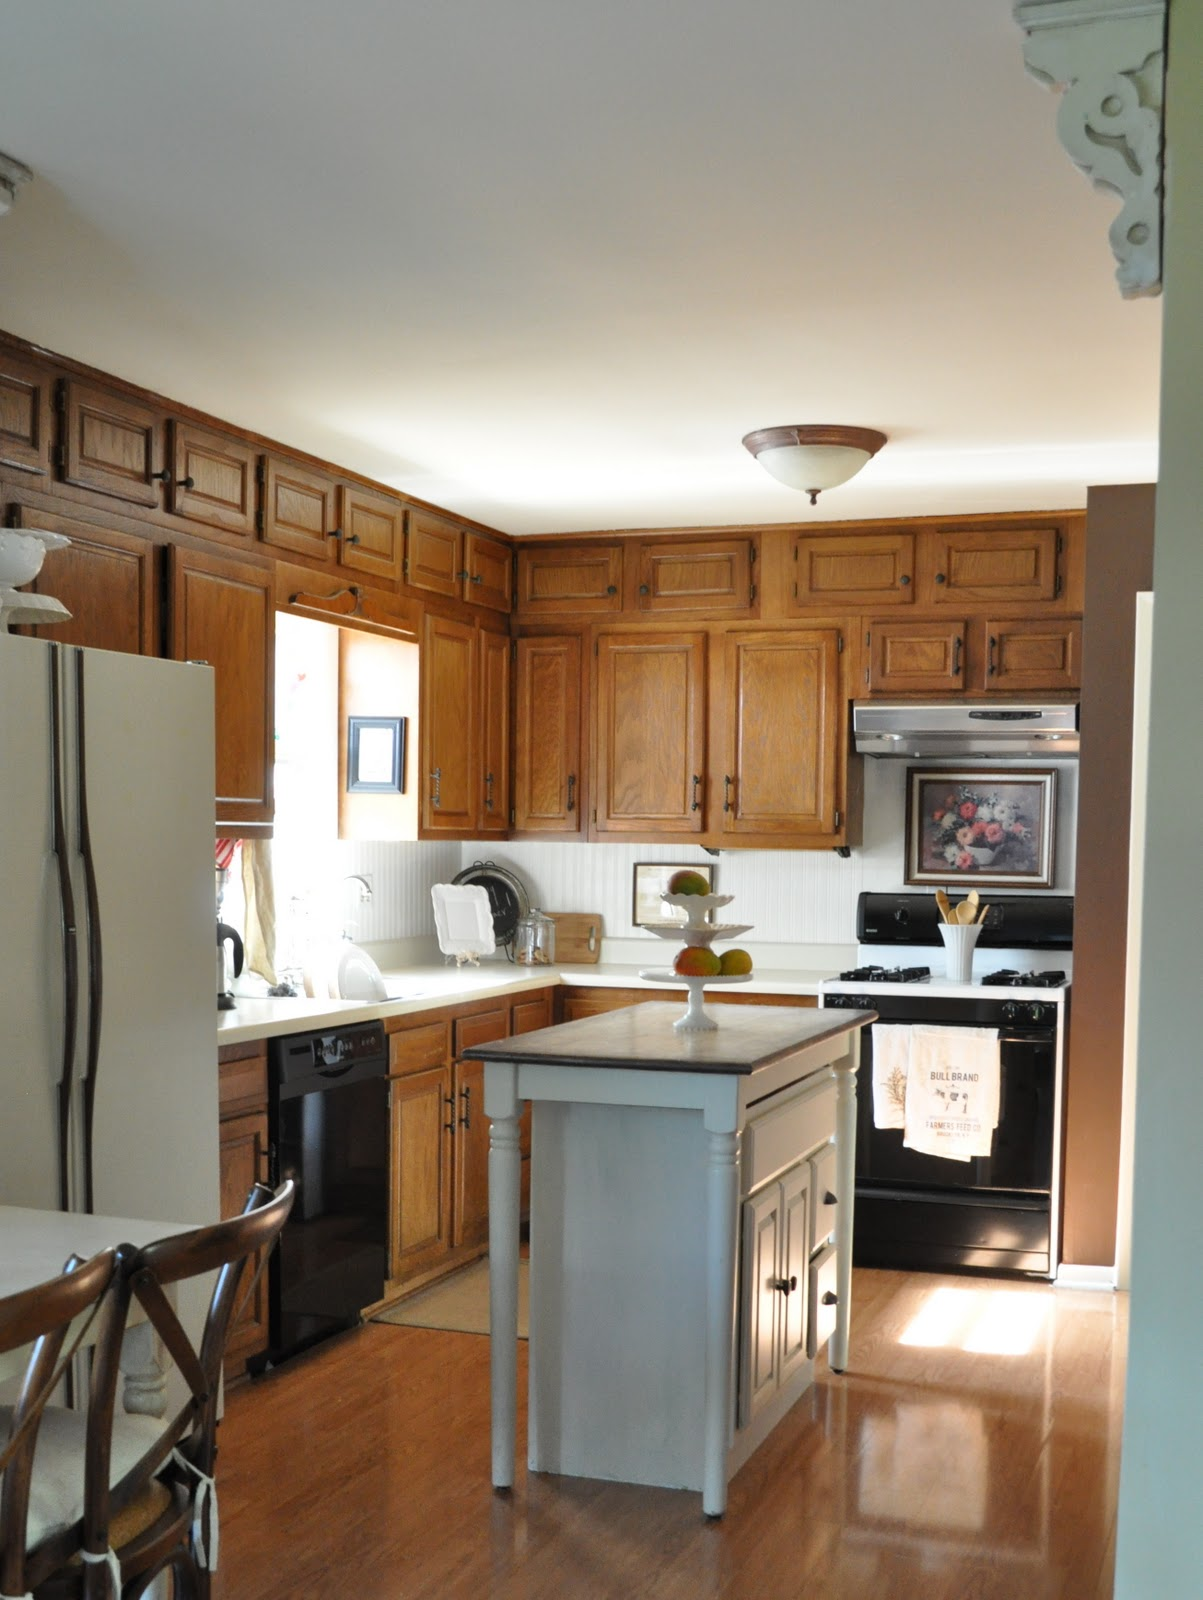 remodel your room living room remodel kitchen remodel living room designs for flats painting oak cabinets